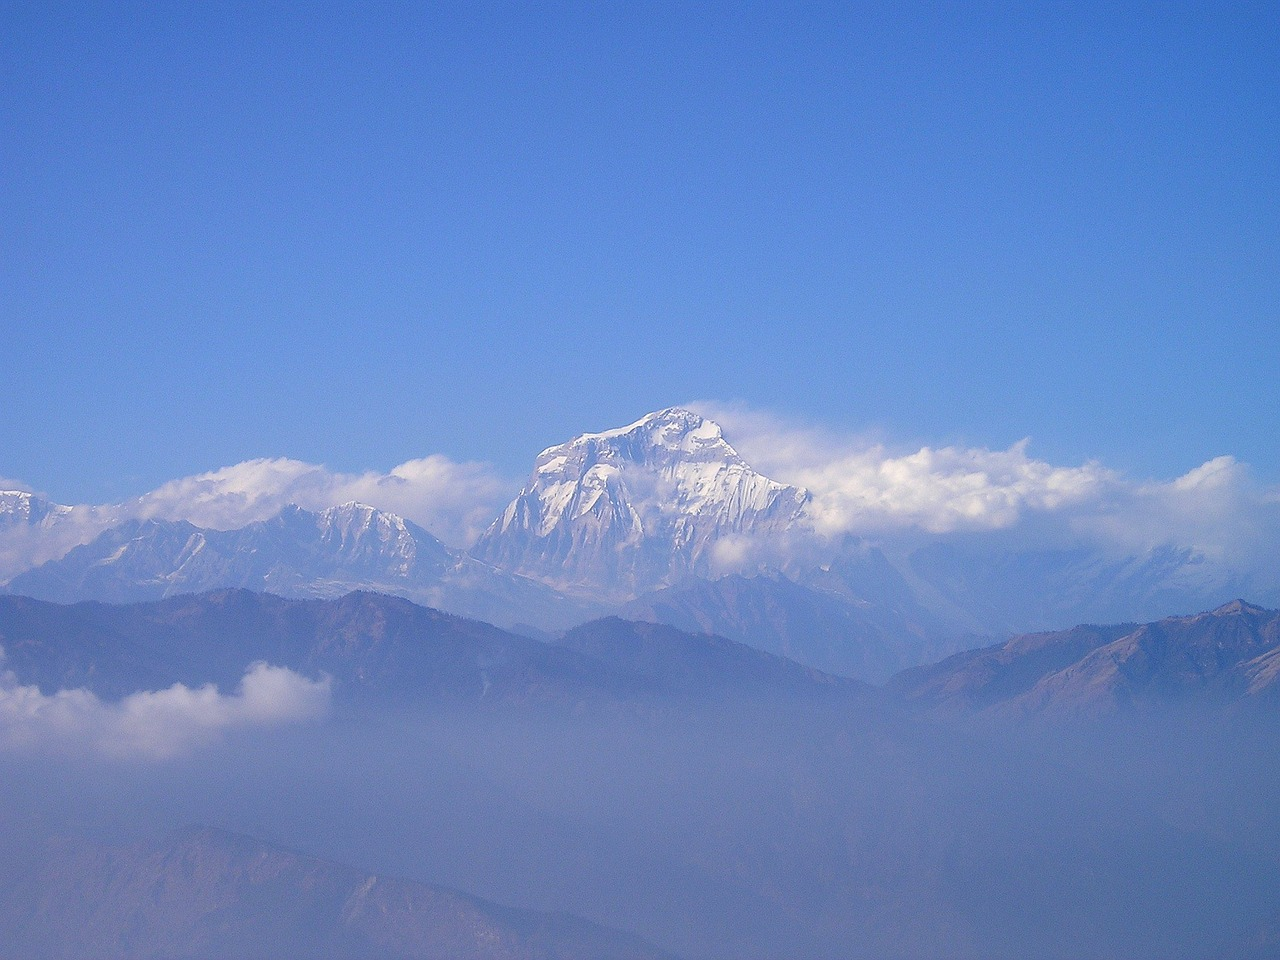 nepal himalayas mountains free photo